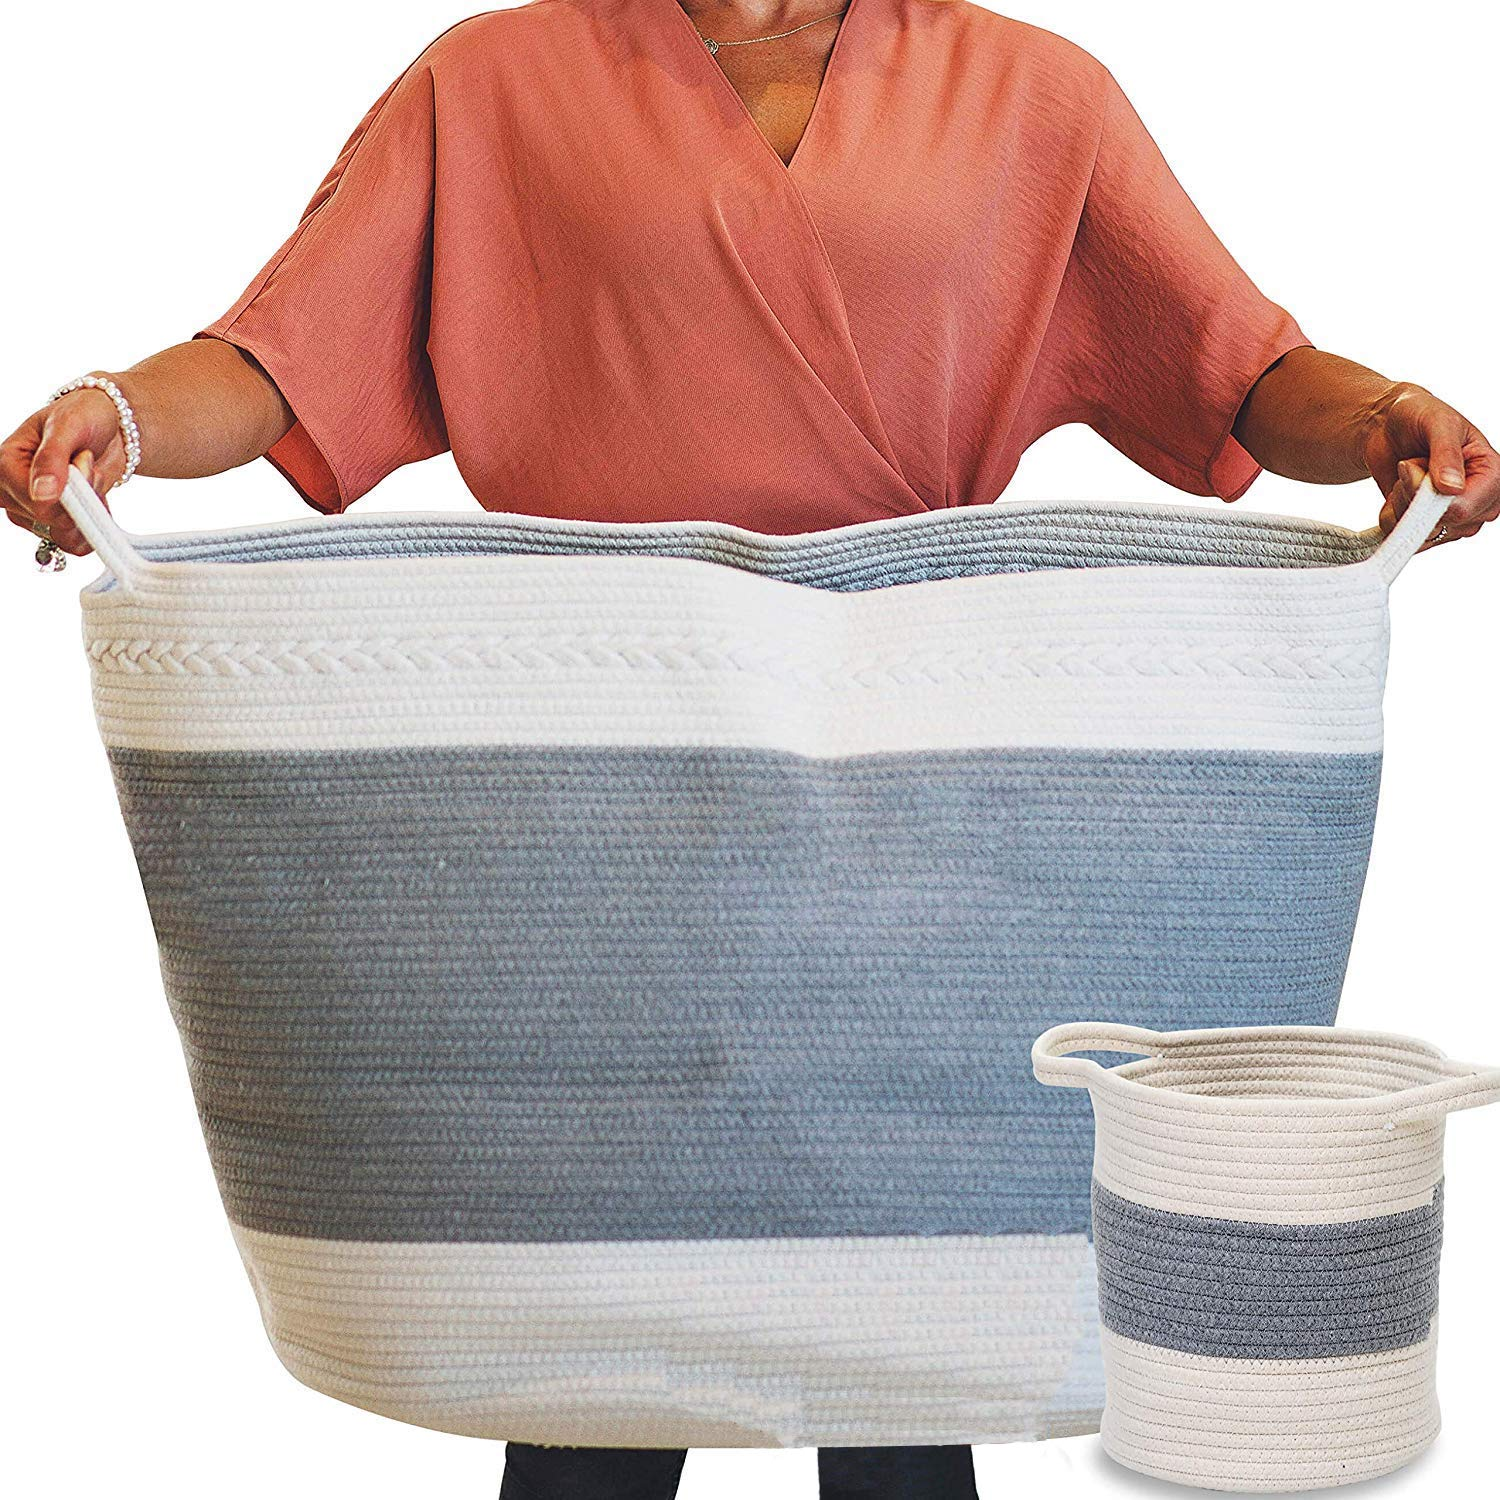 "XXL Large Woven Storage Basket Set - The Largest Organic Cotton Rope Basket Available 22""x19"", Durable Materials with Soft Rope Handles, and Bonus Basket. Great for Laundry, Toys Towels, Bedding"